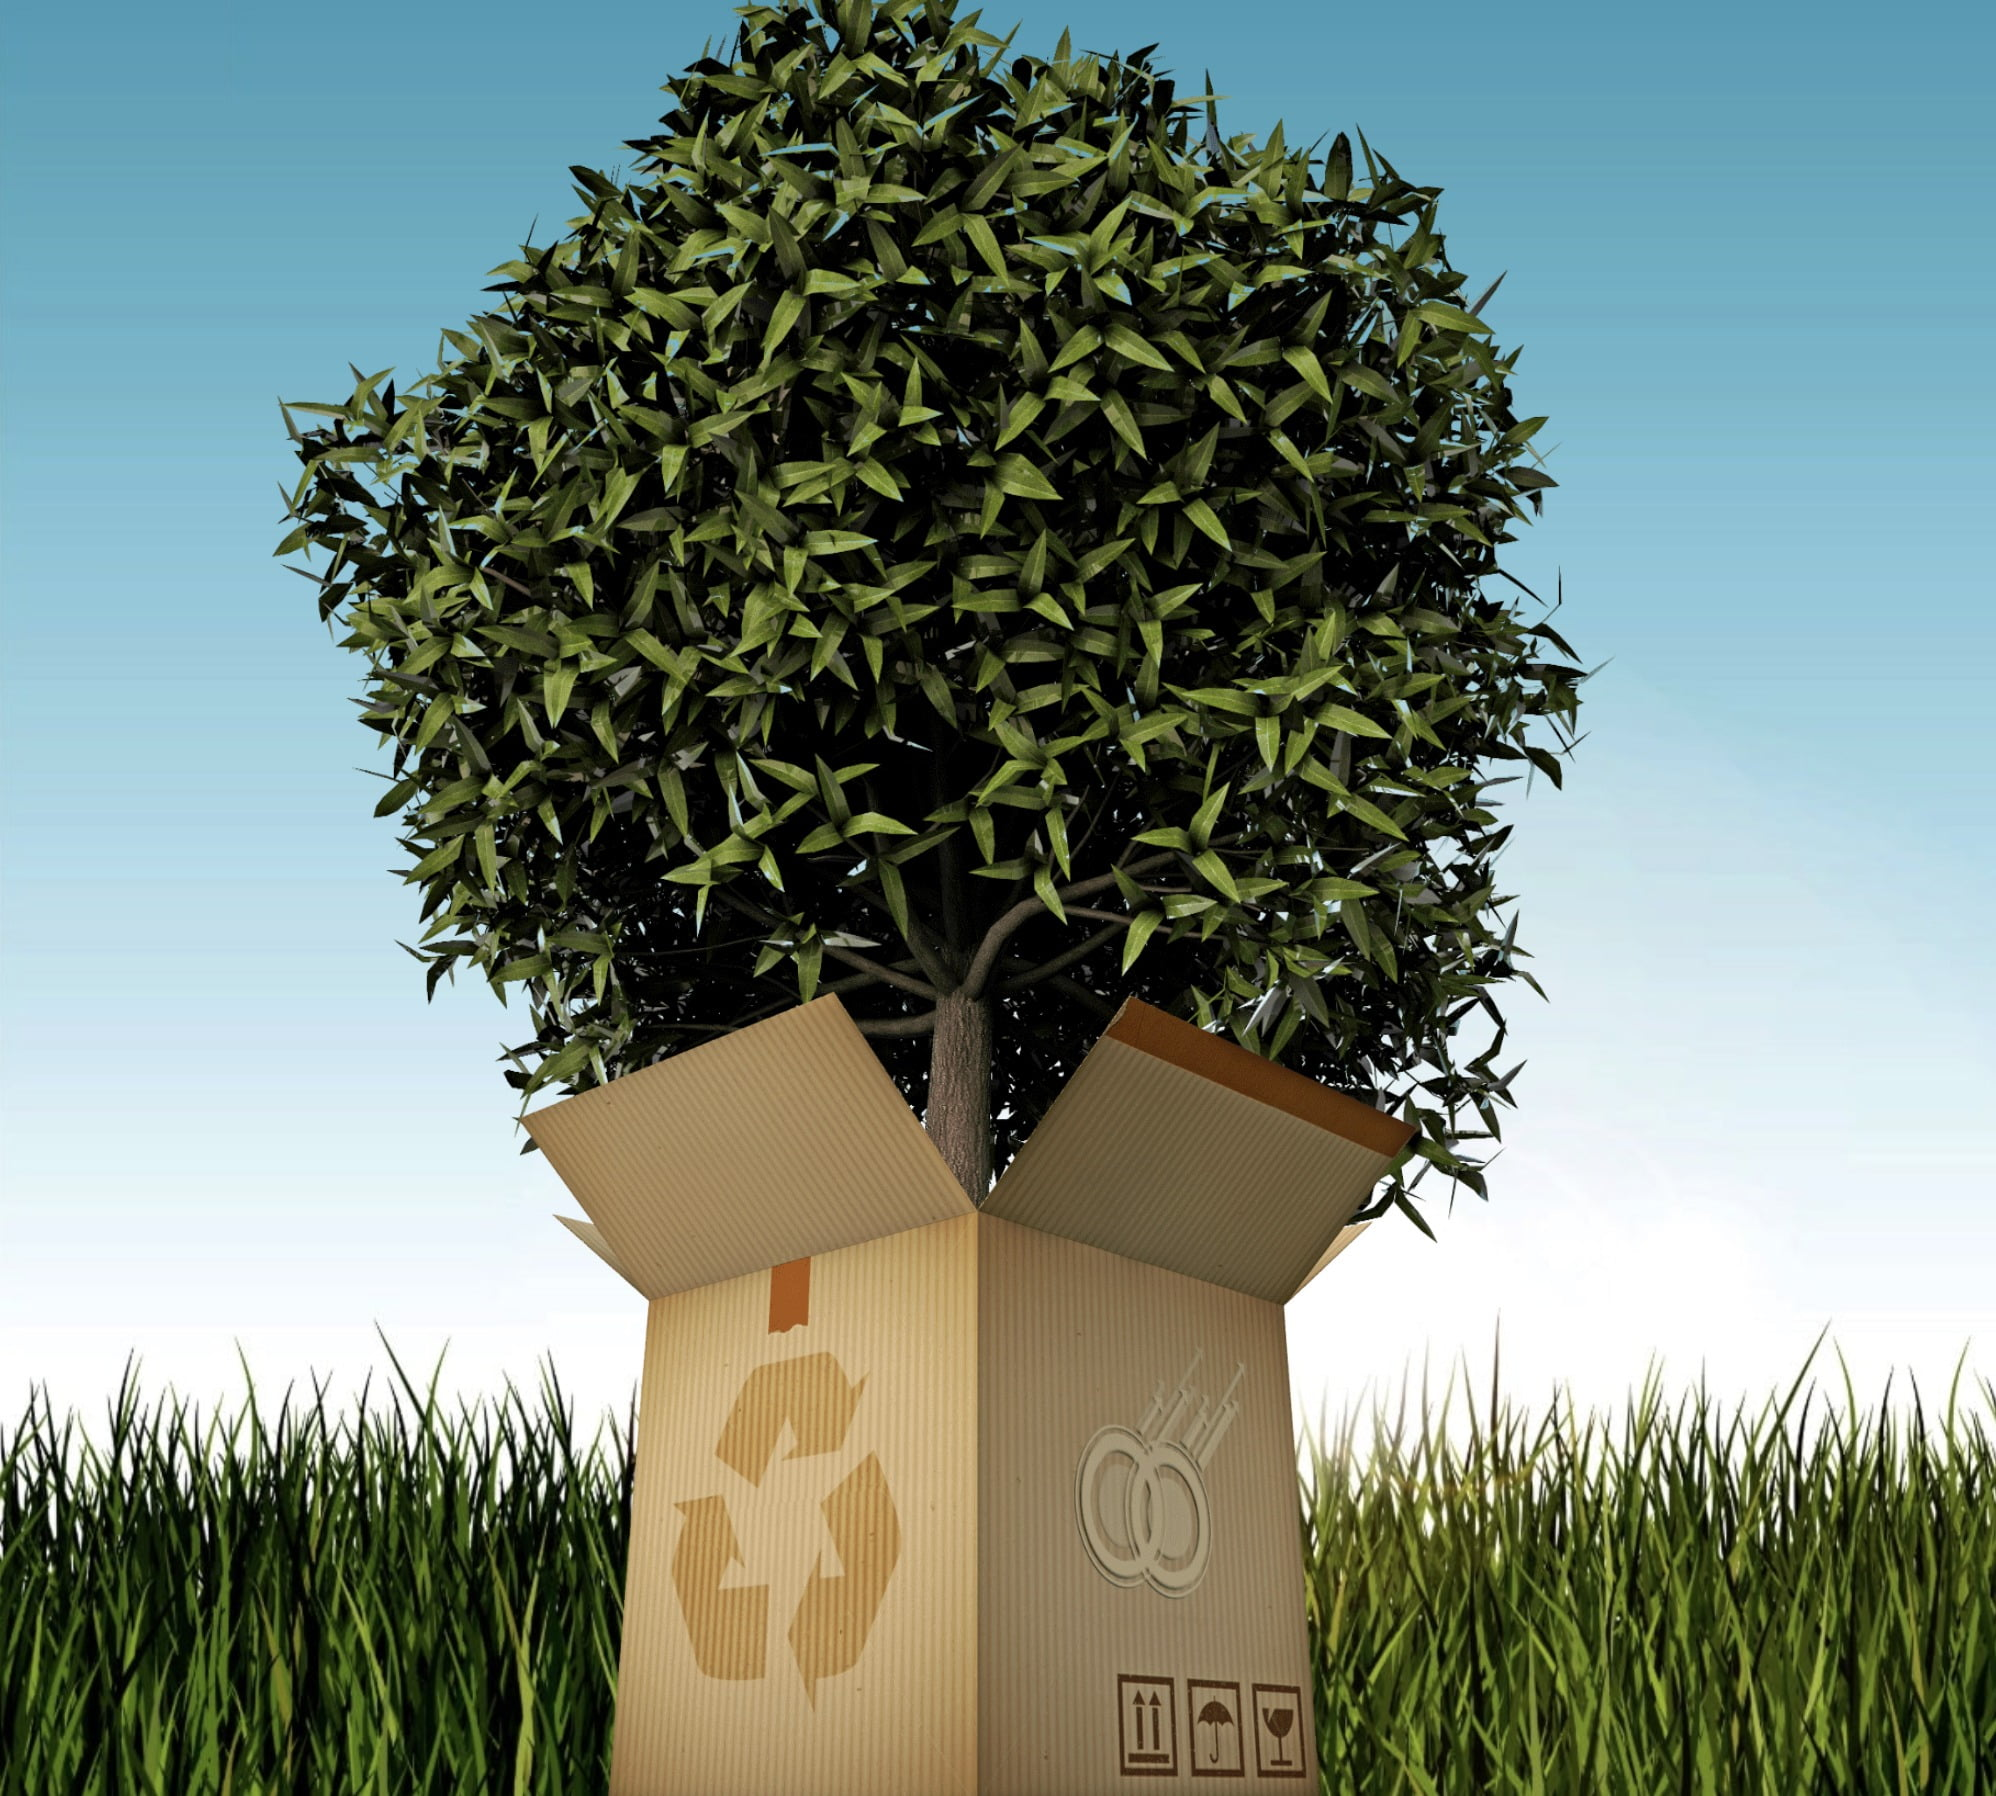 Box with recycling icons and tree growing from inside the box